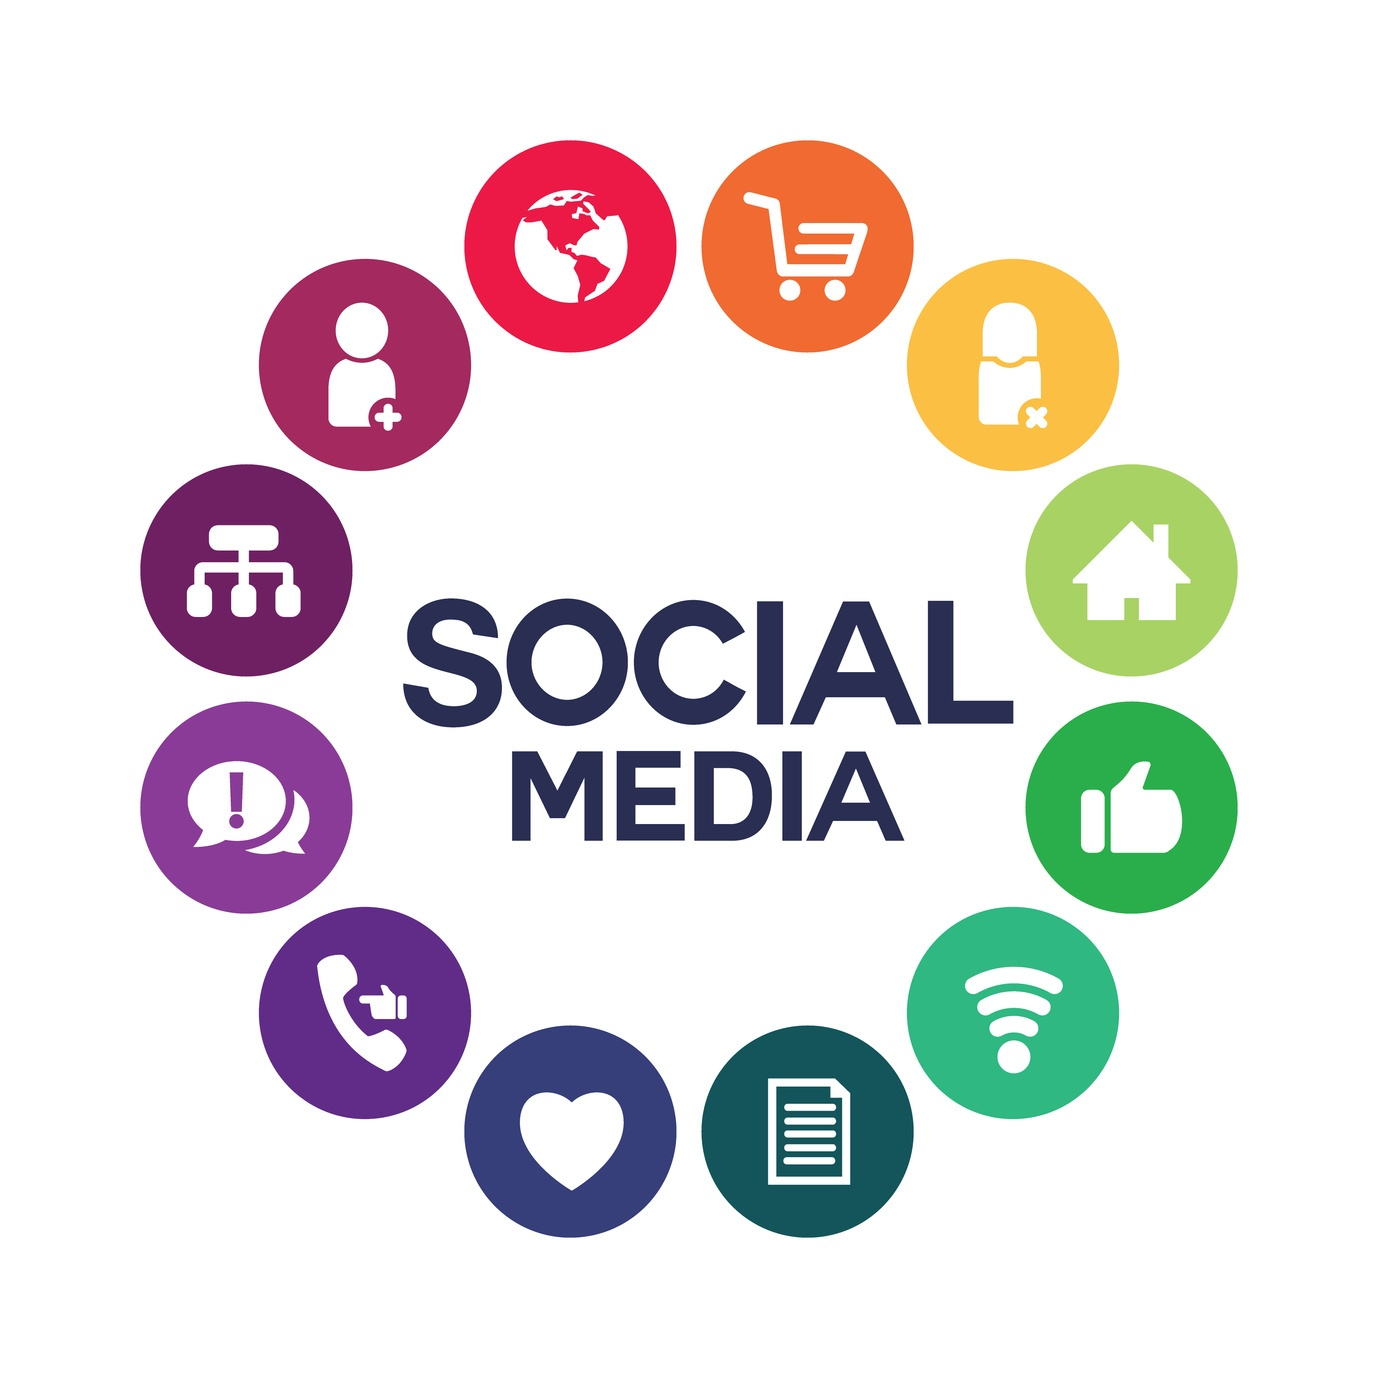 Using Social Media to Drive Traffic, Leads & Sales